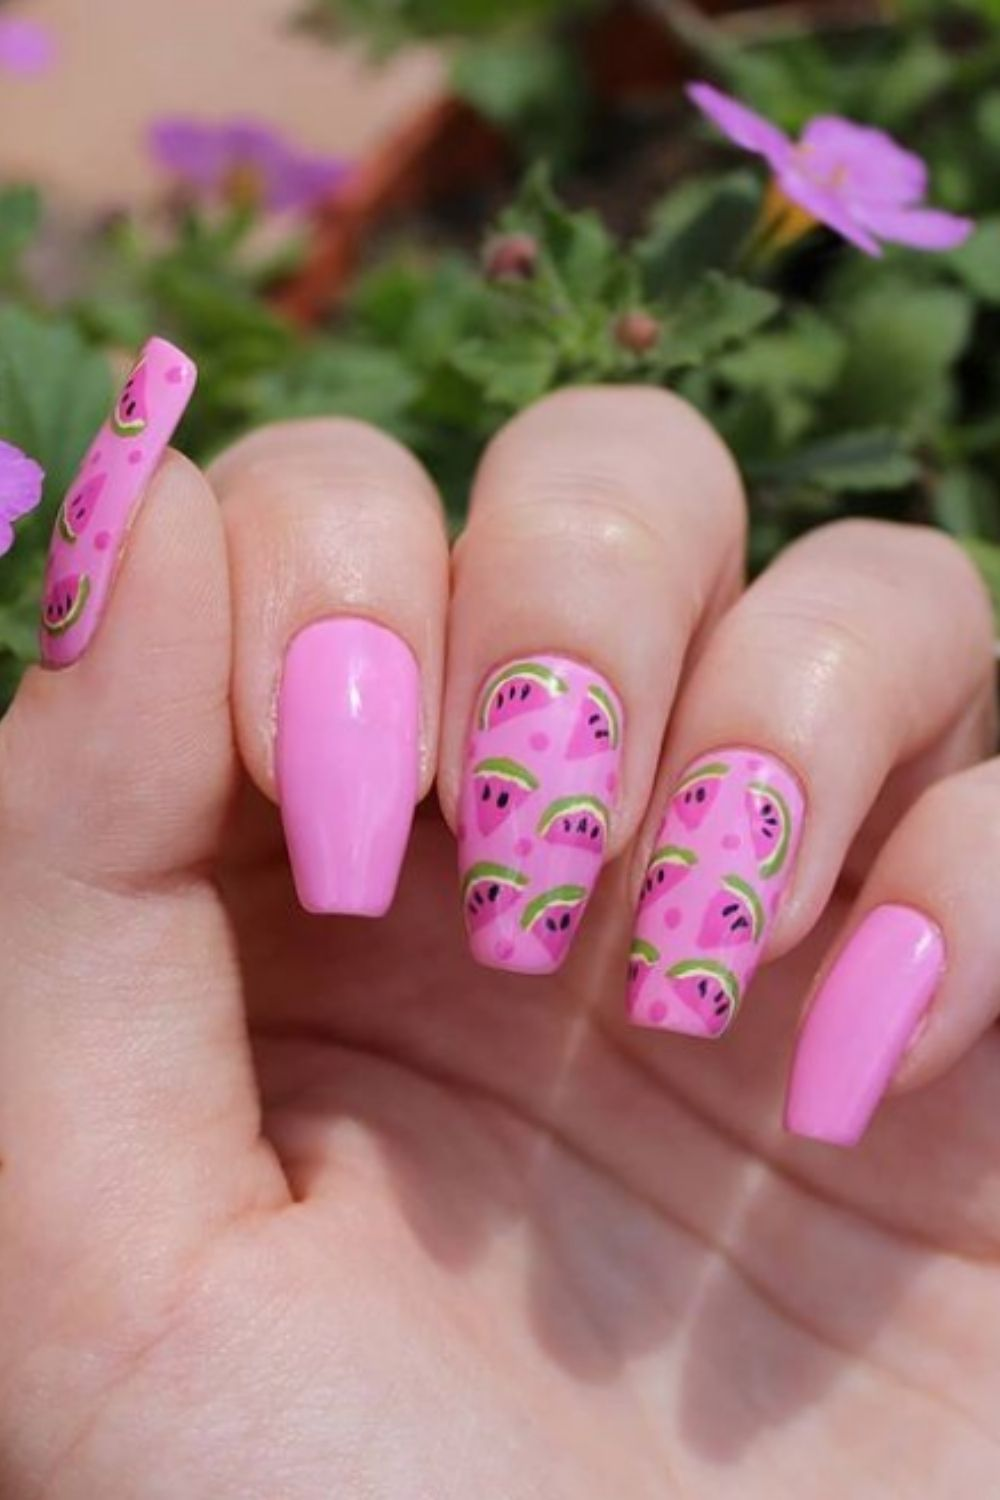 30+ Chic short acrylic nails to try in summer 2021